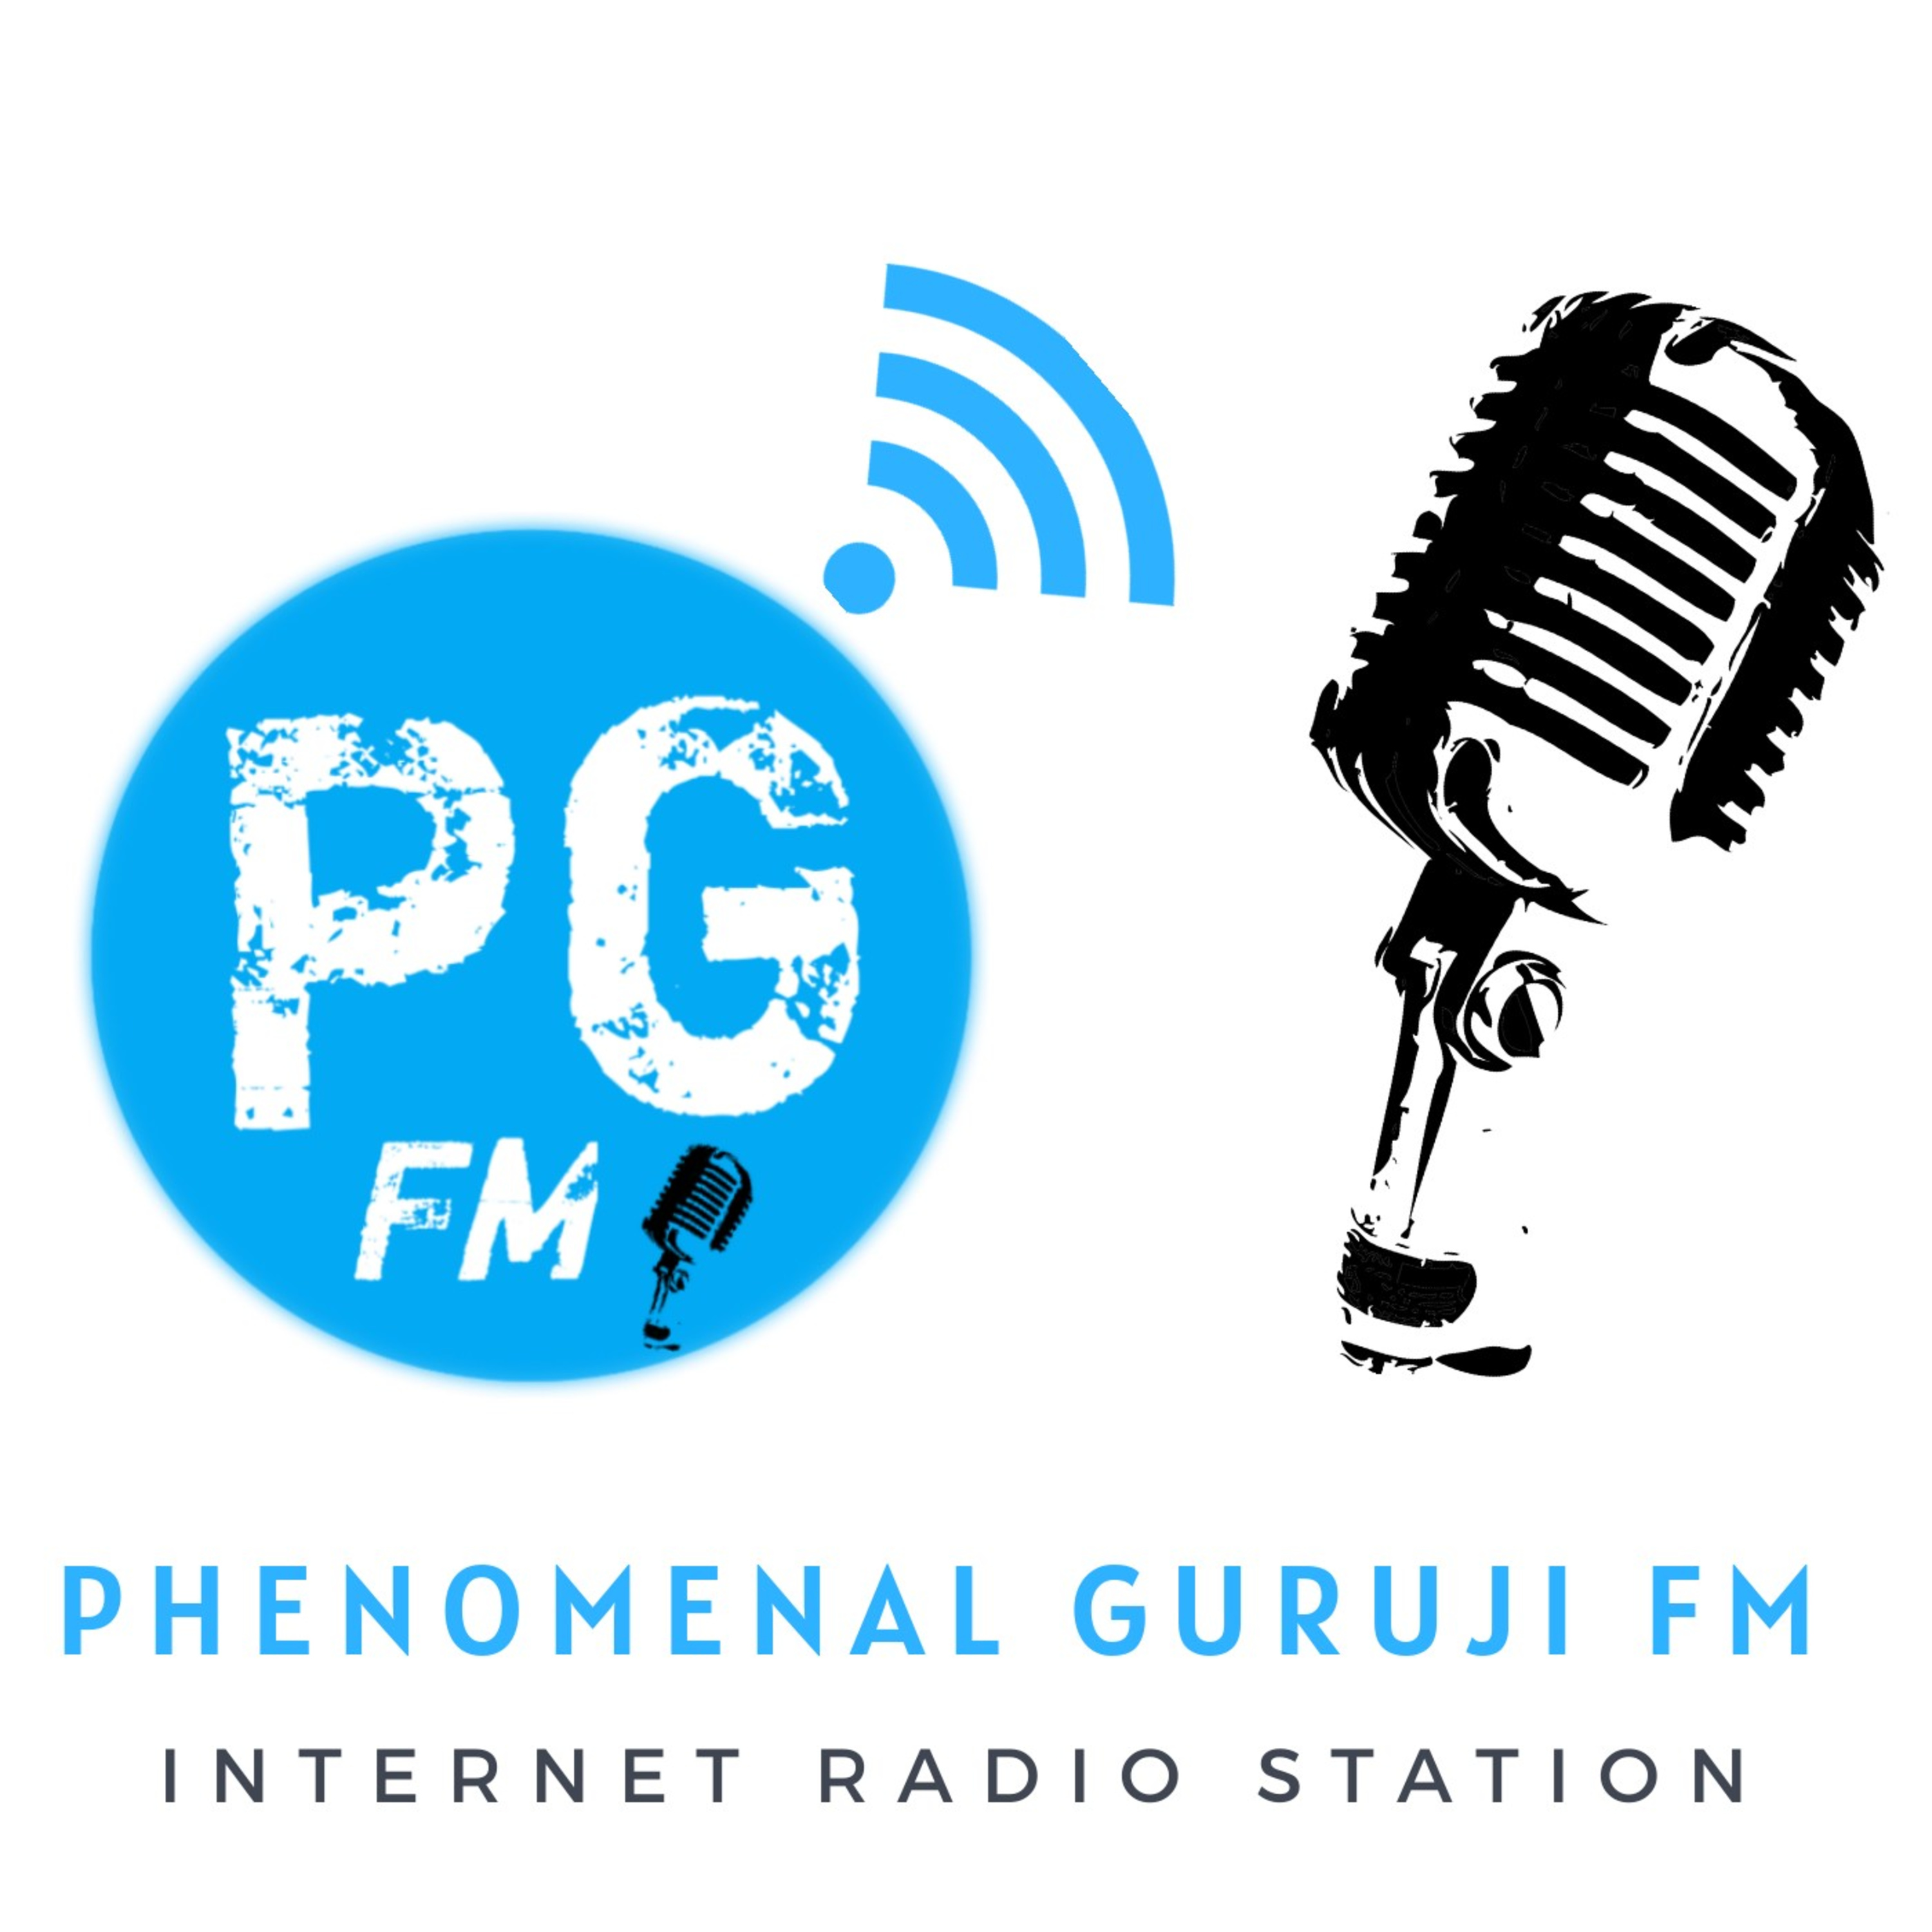 Freelance Business and Earn Money Online - Phenomenal Guruji